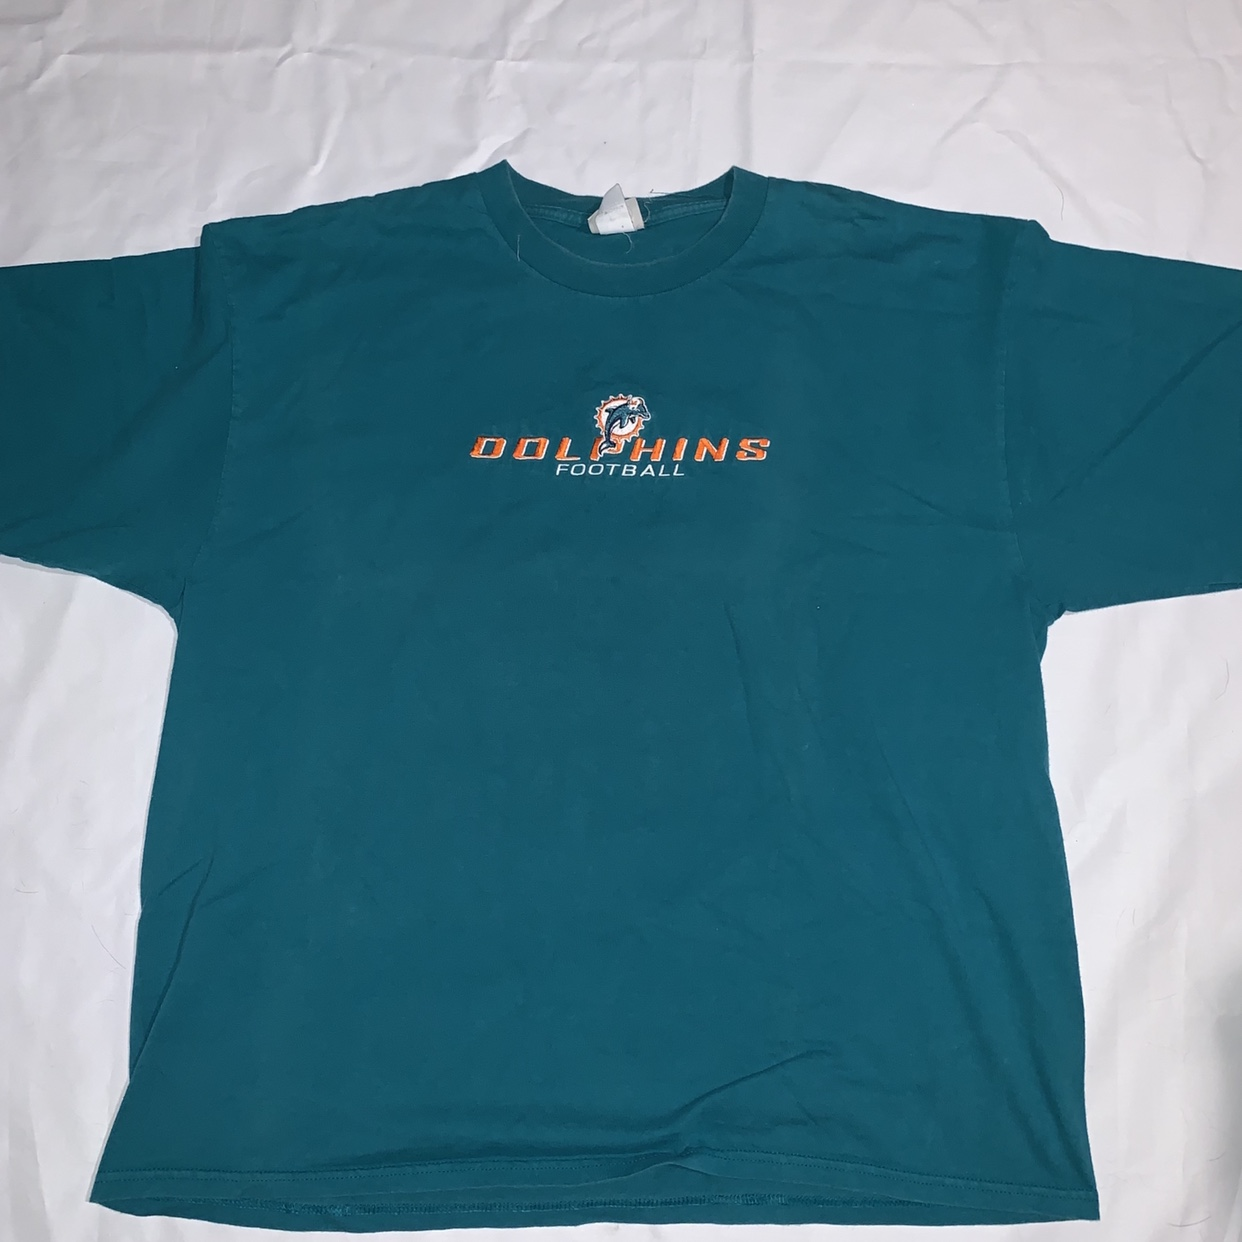 f51a91b4 Vintage Miami Dolphins Football Shirt Embroidered... - Depop